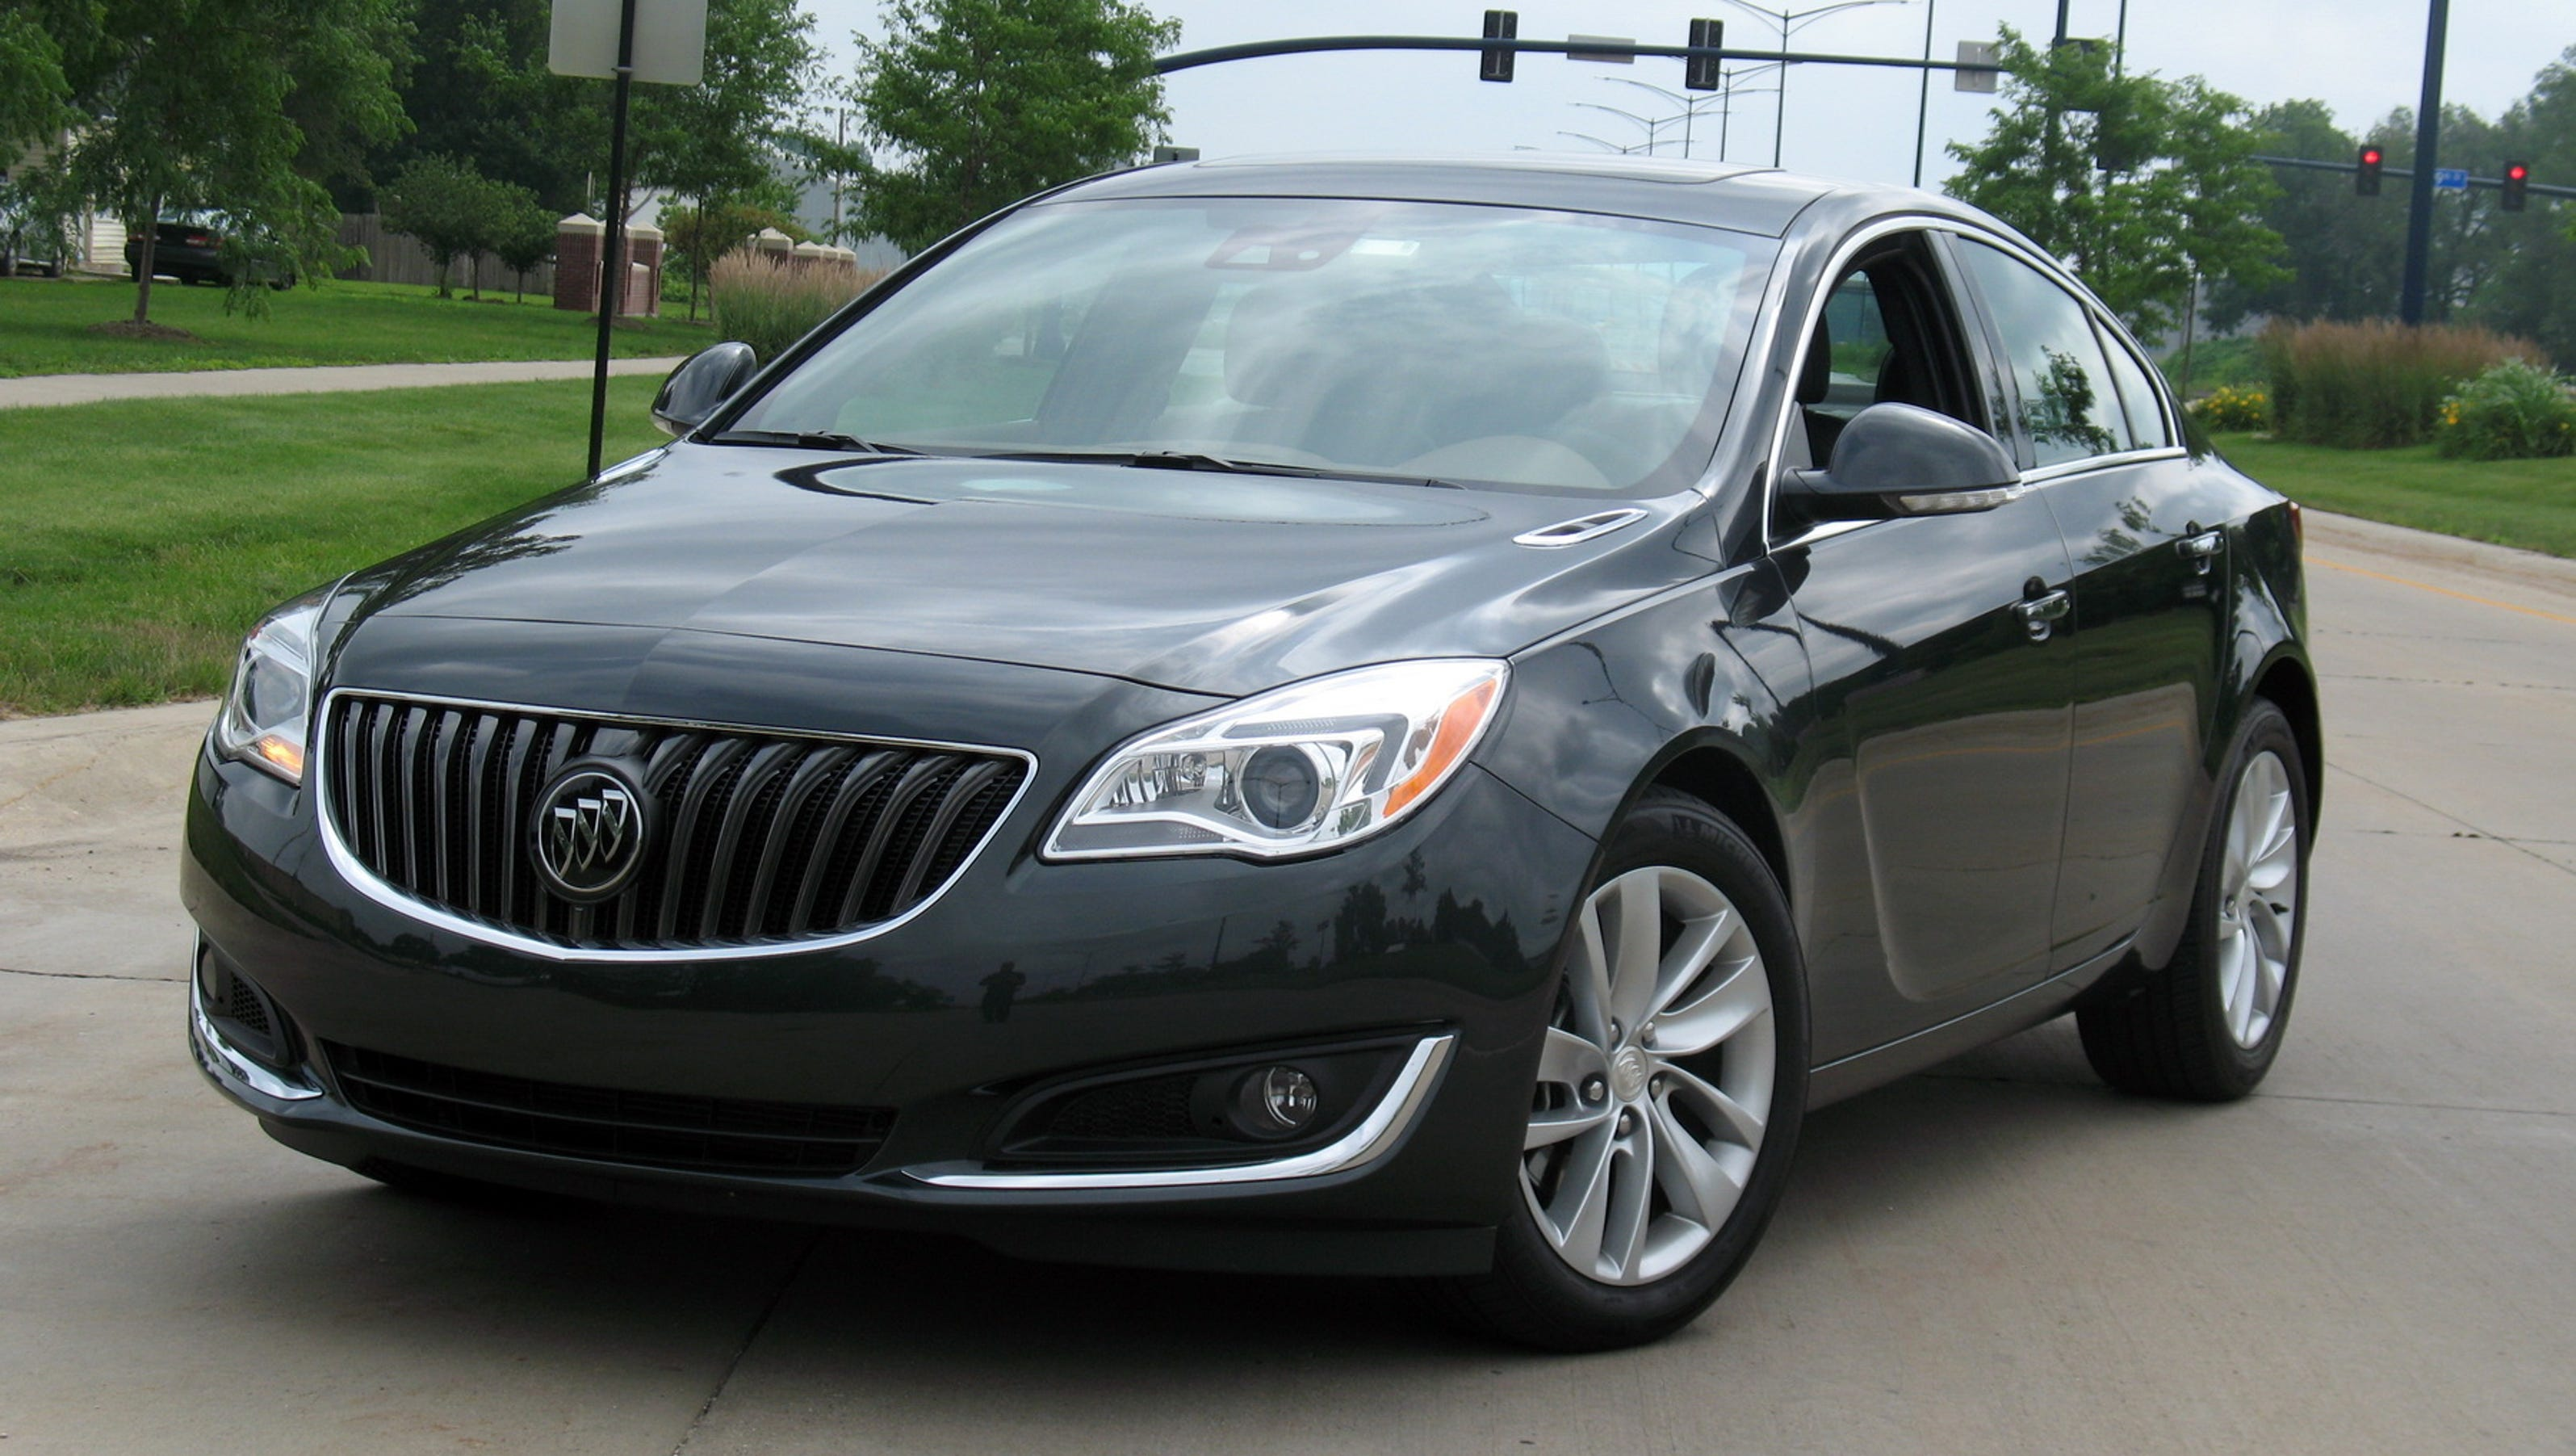 2014 buick regal performance review 2017 2018 best cars reviews. Black Bedroom Furniture Sets. Home Design Ideas